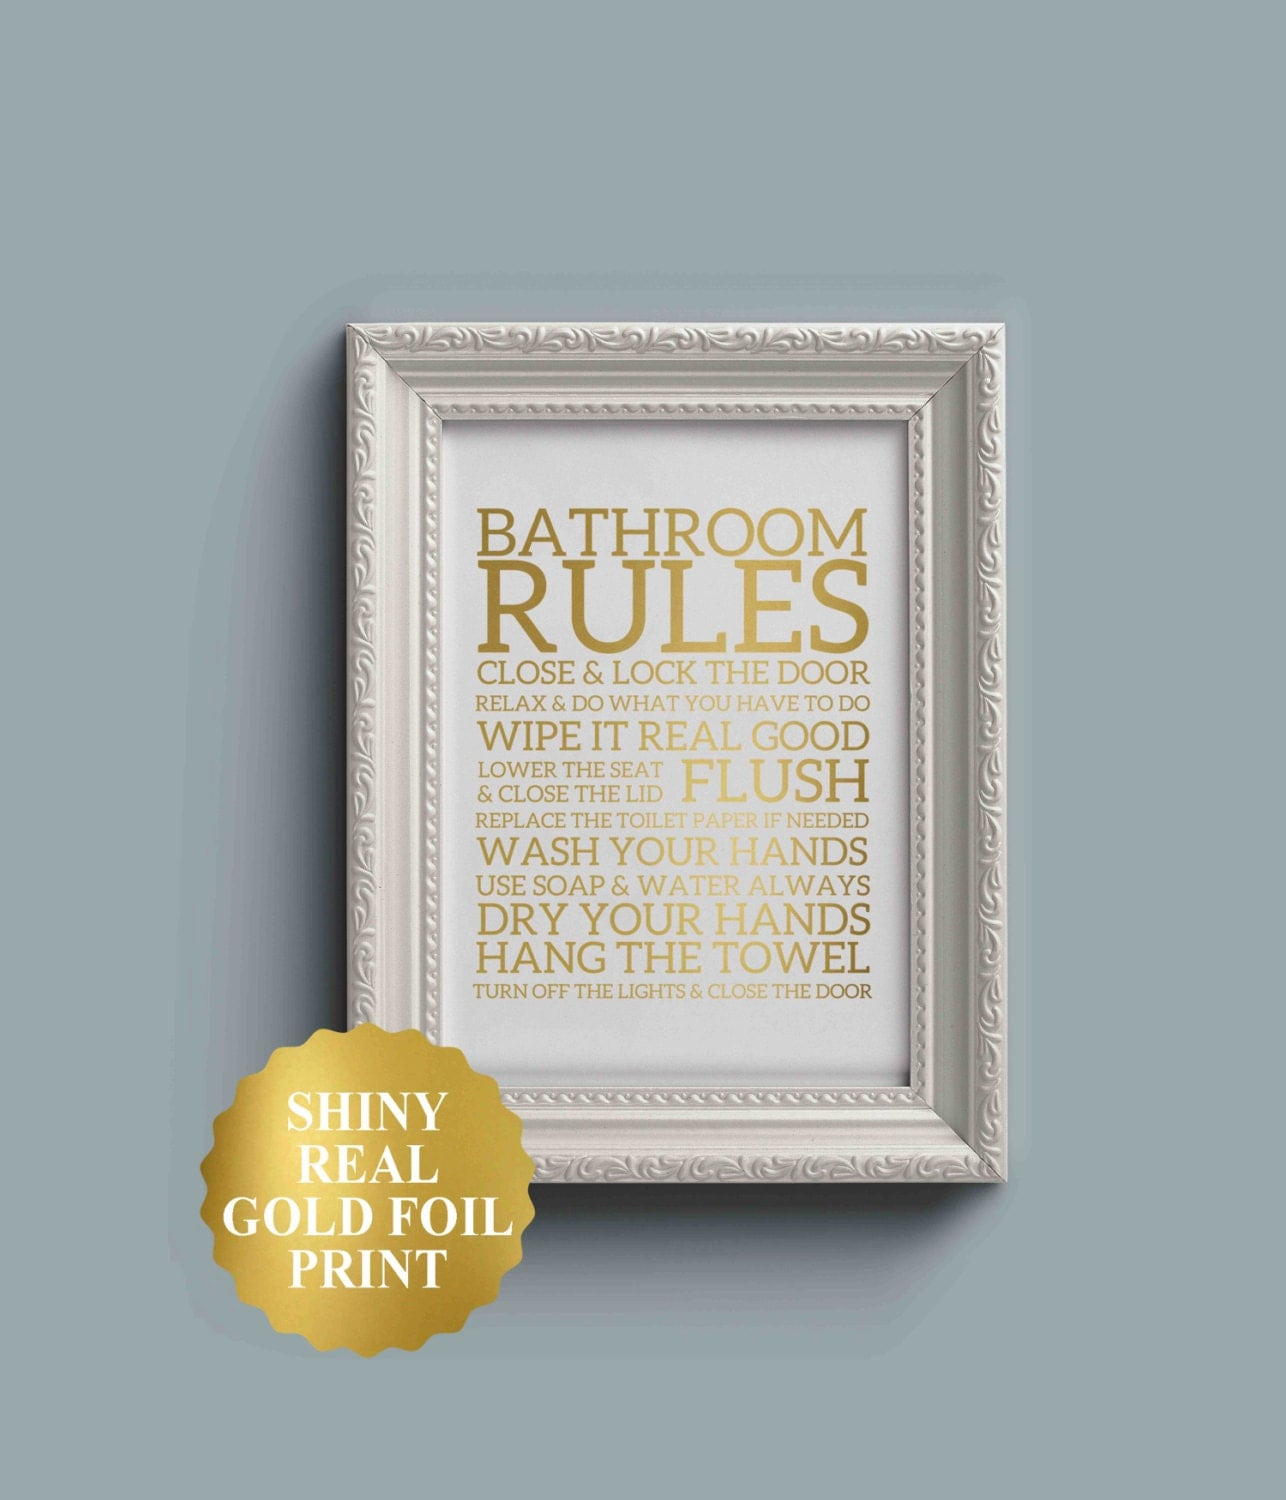 Bathroom Rules Wall Decor : Bathroom rules print wall decor gold foil